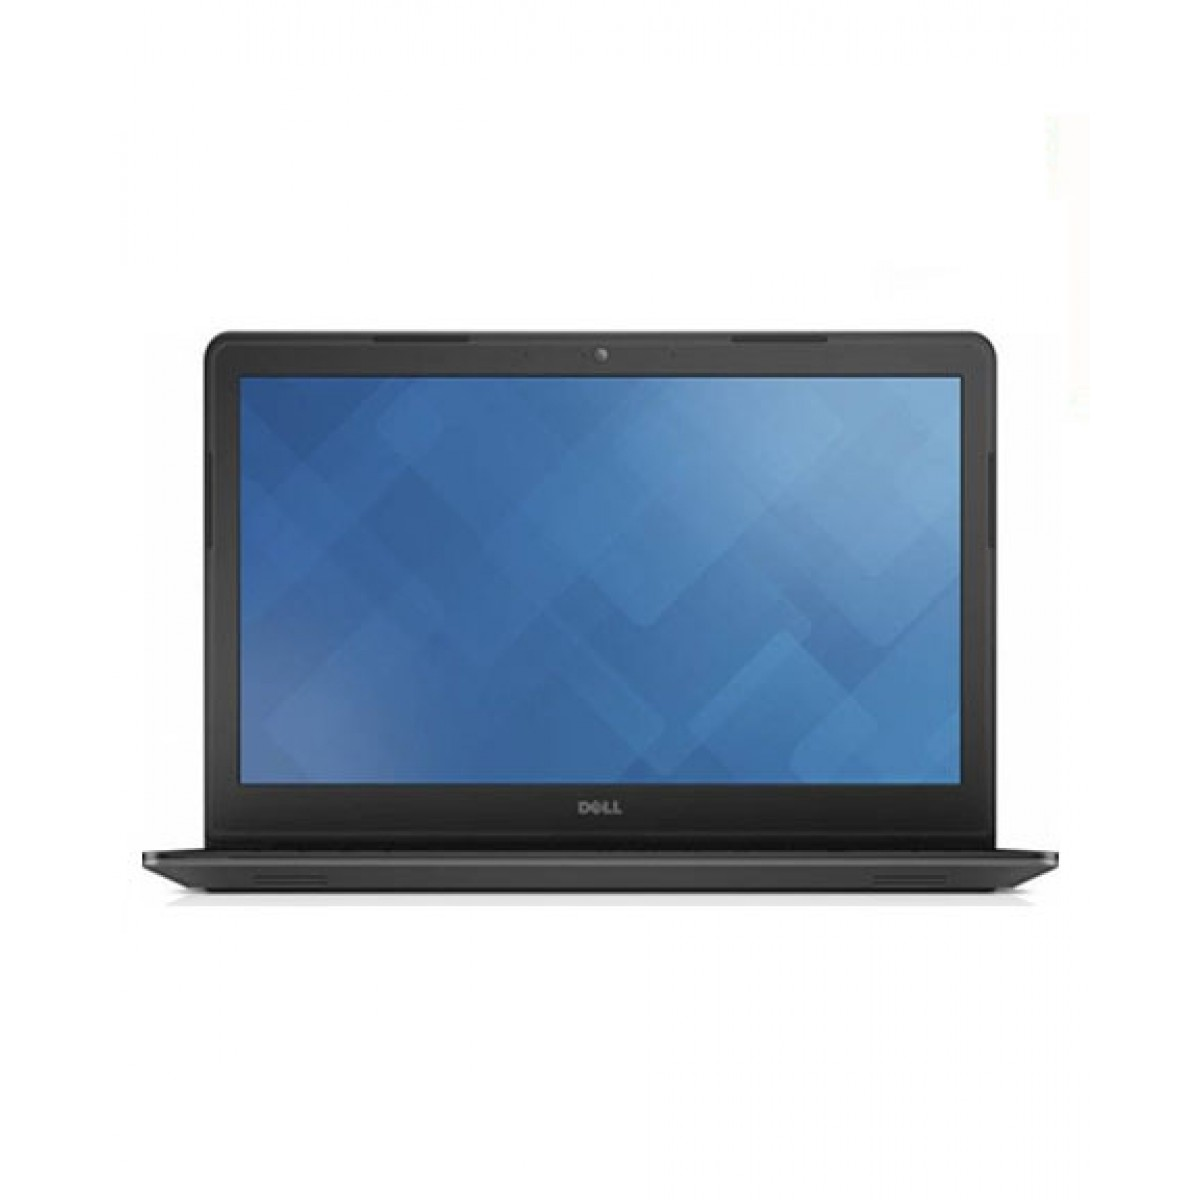 Dell Inspiron 15 5000 Series Core i7 4th Gen 8GB 1TB Radeon R7 M265 Laptop  (5547) - Without Warranty